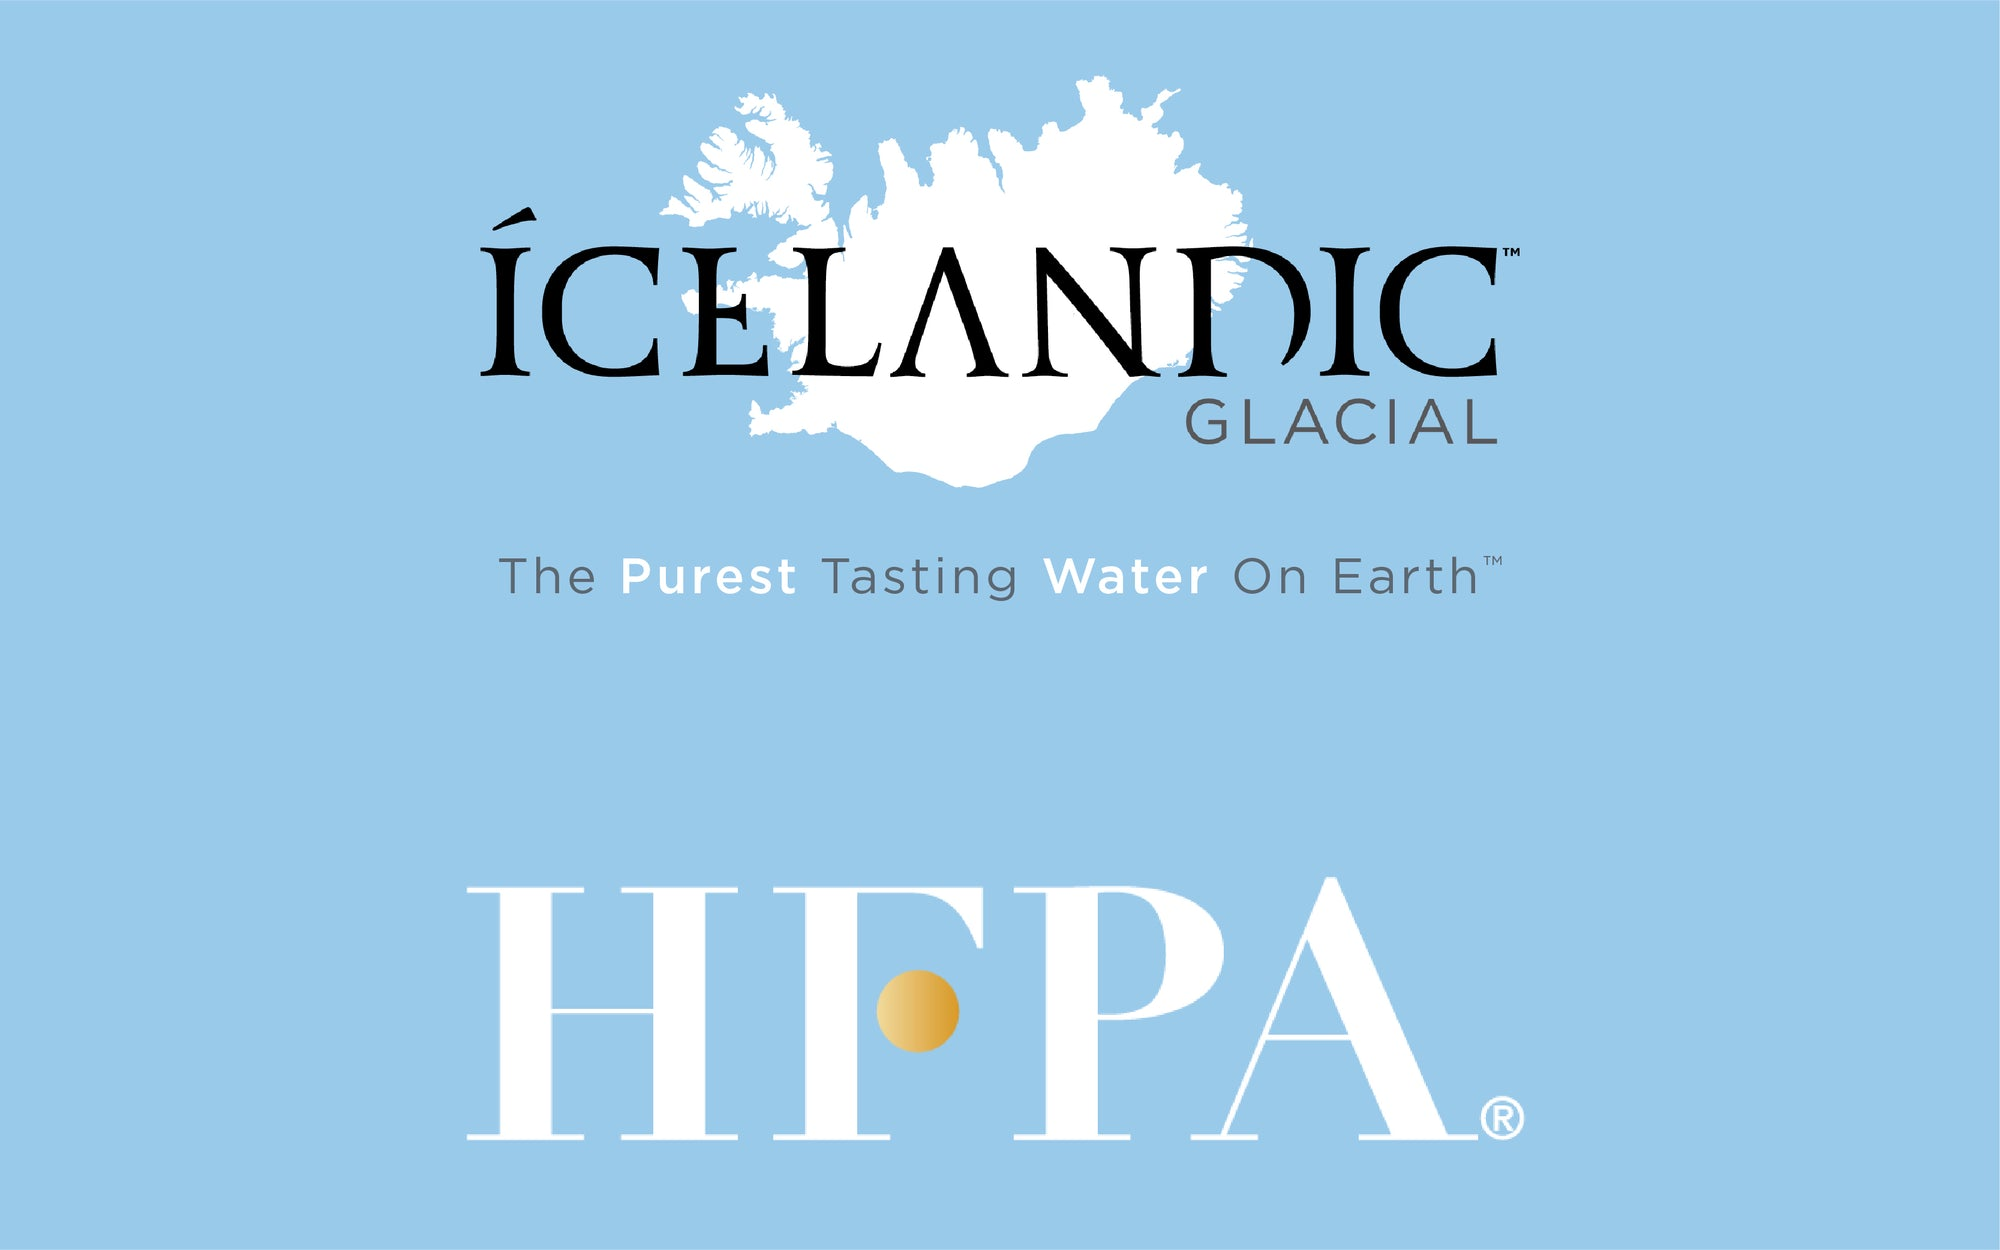 The Hollywood Foreign Press Association and Icelandic Glacial Team Up to Support Disaster Relief Efforts in Flint and Puerto Rico